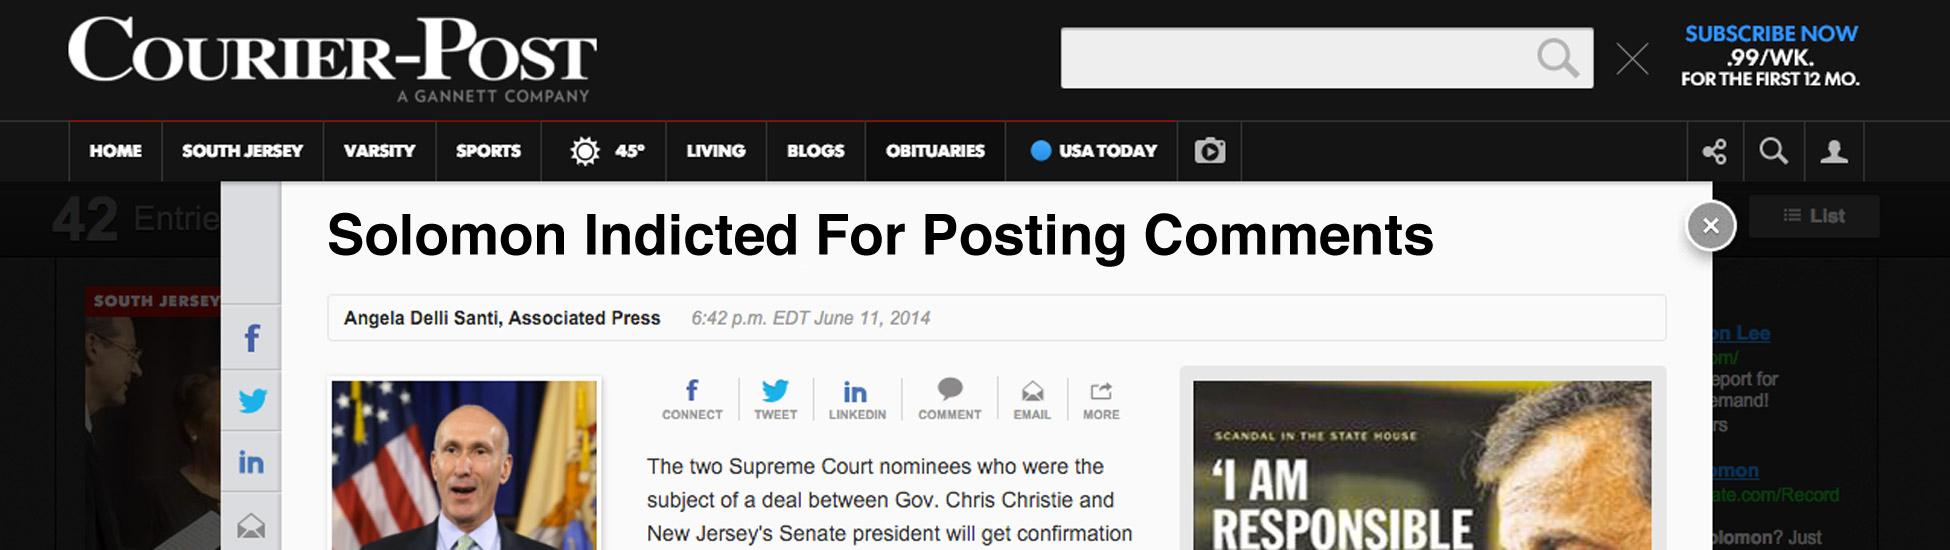 Courier Post News? Jail Time For Posting Pet Videos